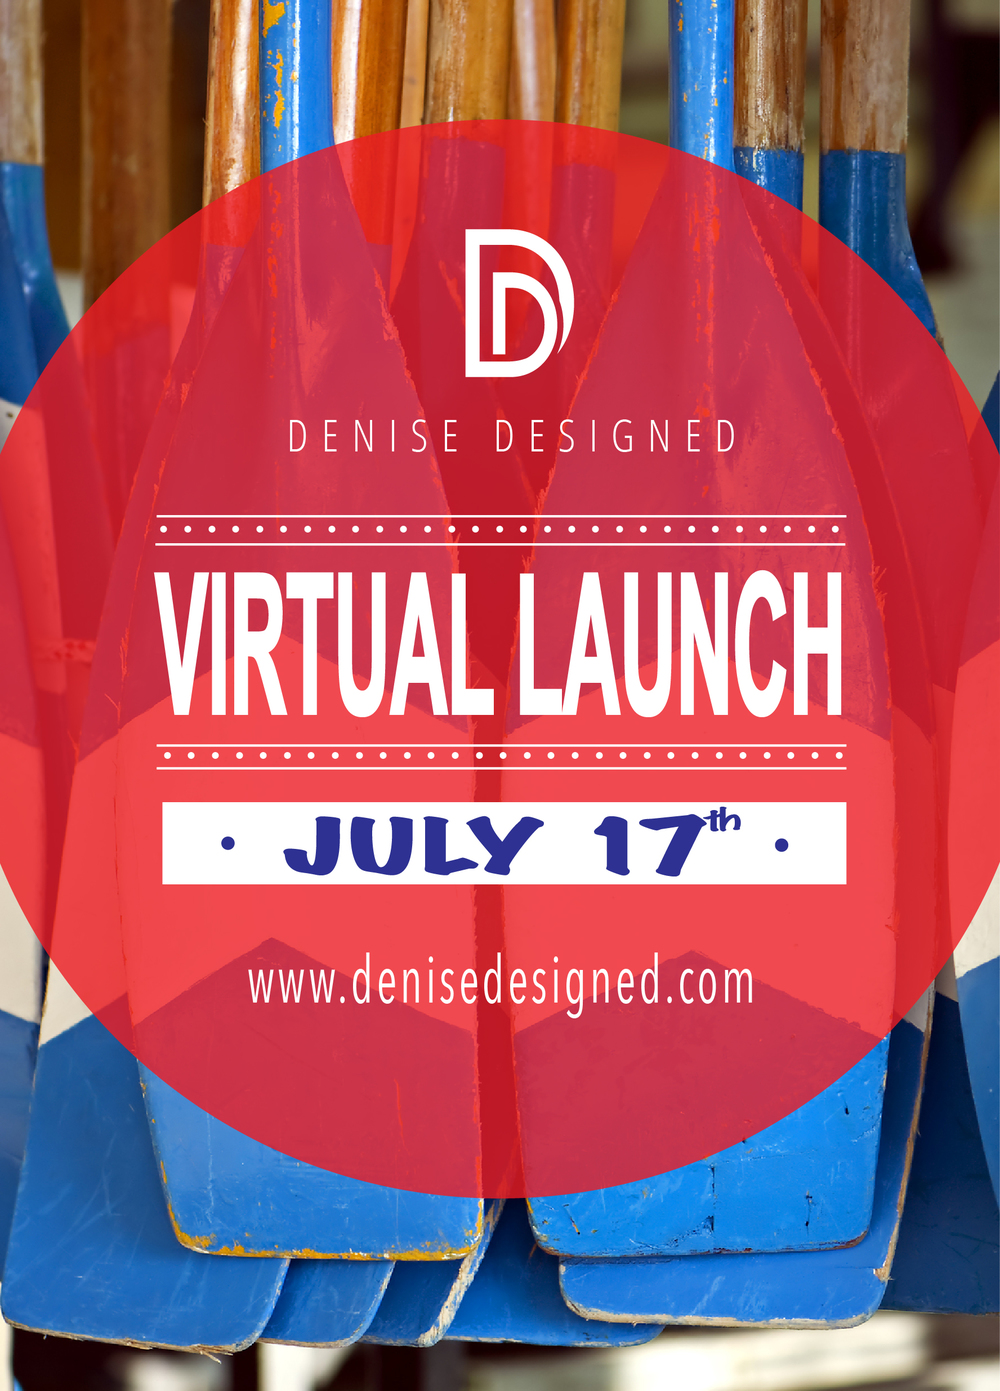 Denise Designed Virtual Launch (final)-01.jpg